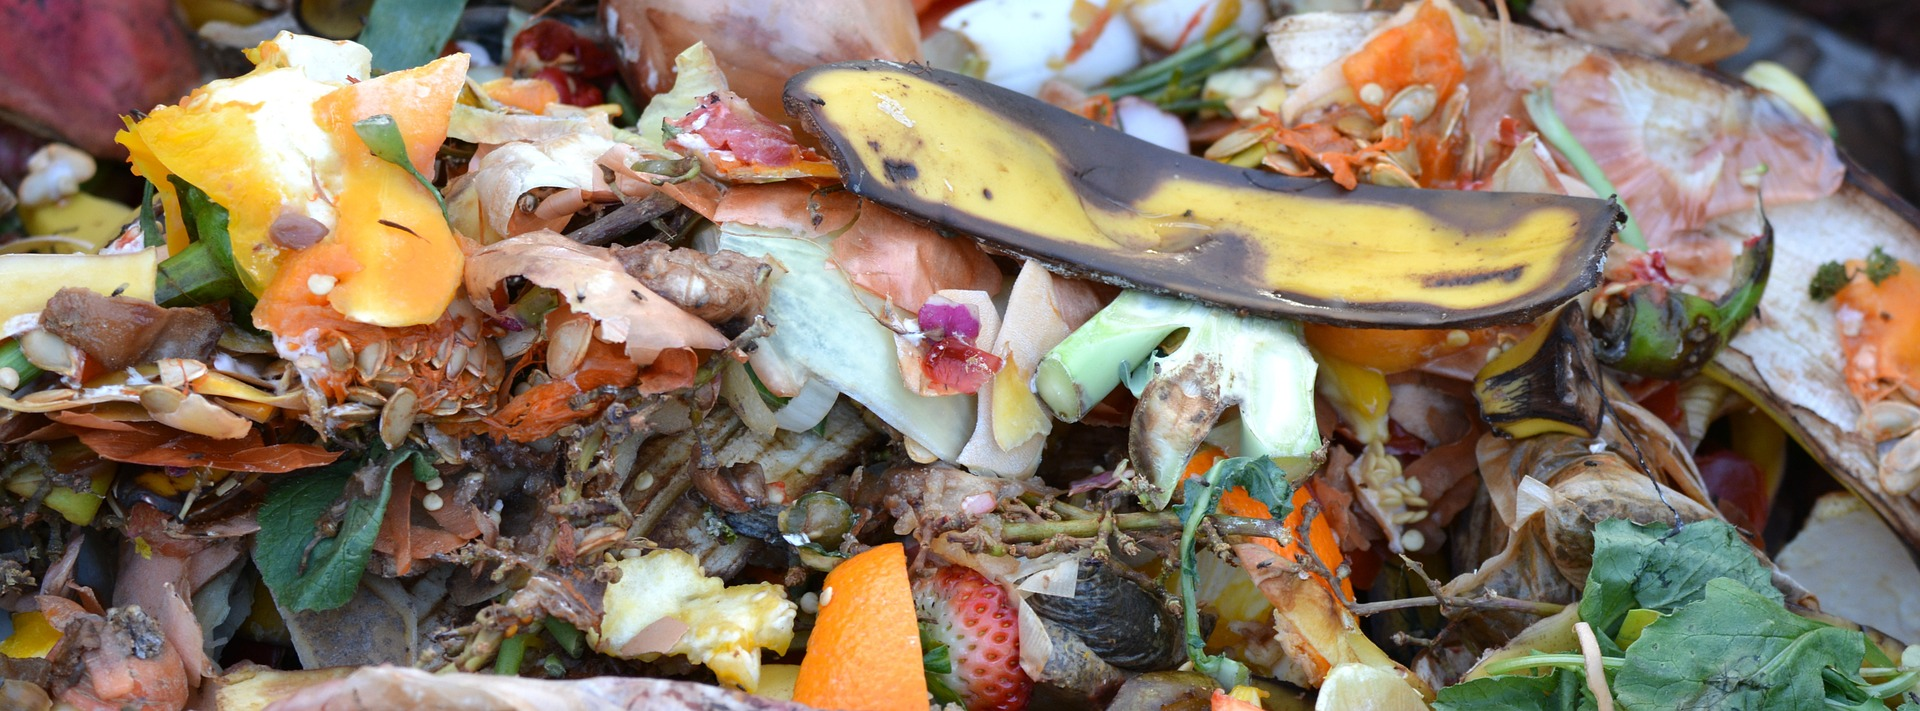 Reducing and composting food waste